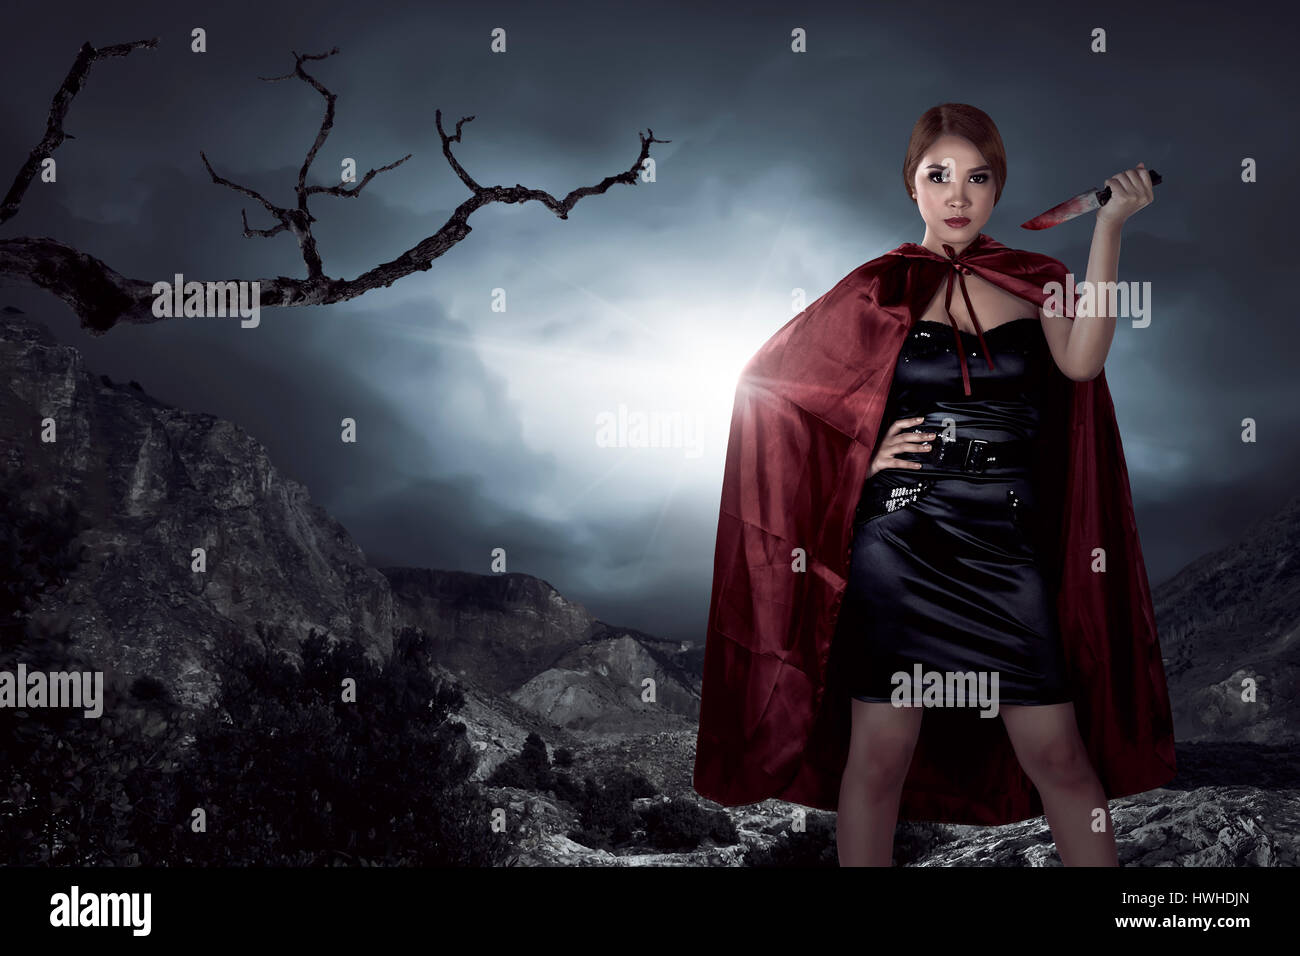 Beautiful asian witch woman holding bloody knife in the night, horror situation. Halloween concept image Stock Photo